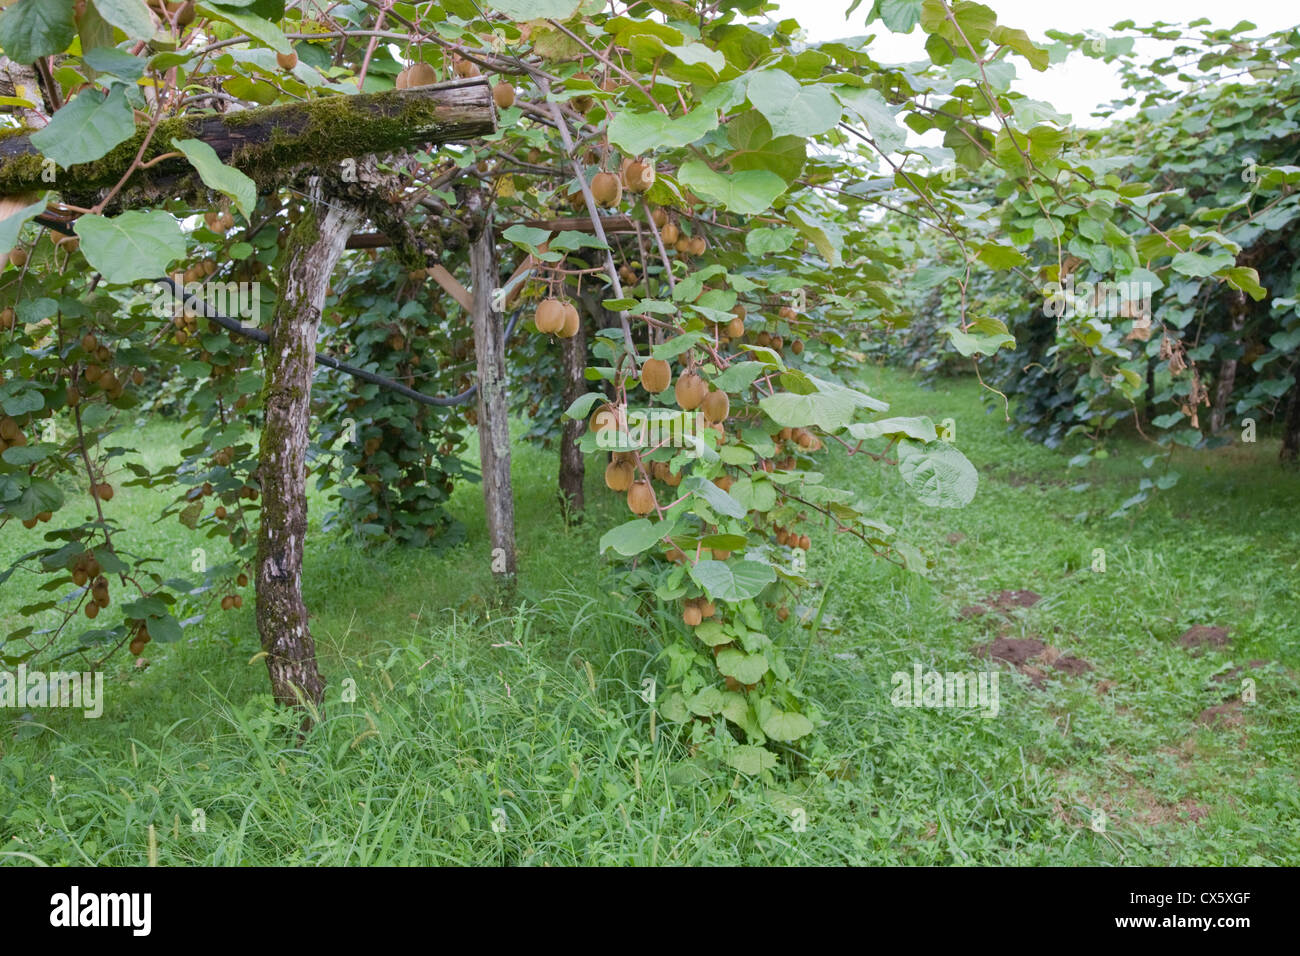 Plantation Du Kiwi France Banque D 39 Images Photo Stock